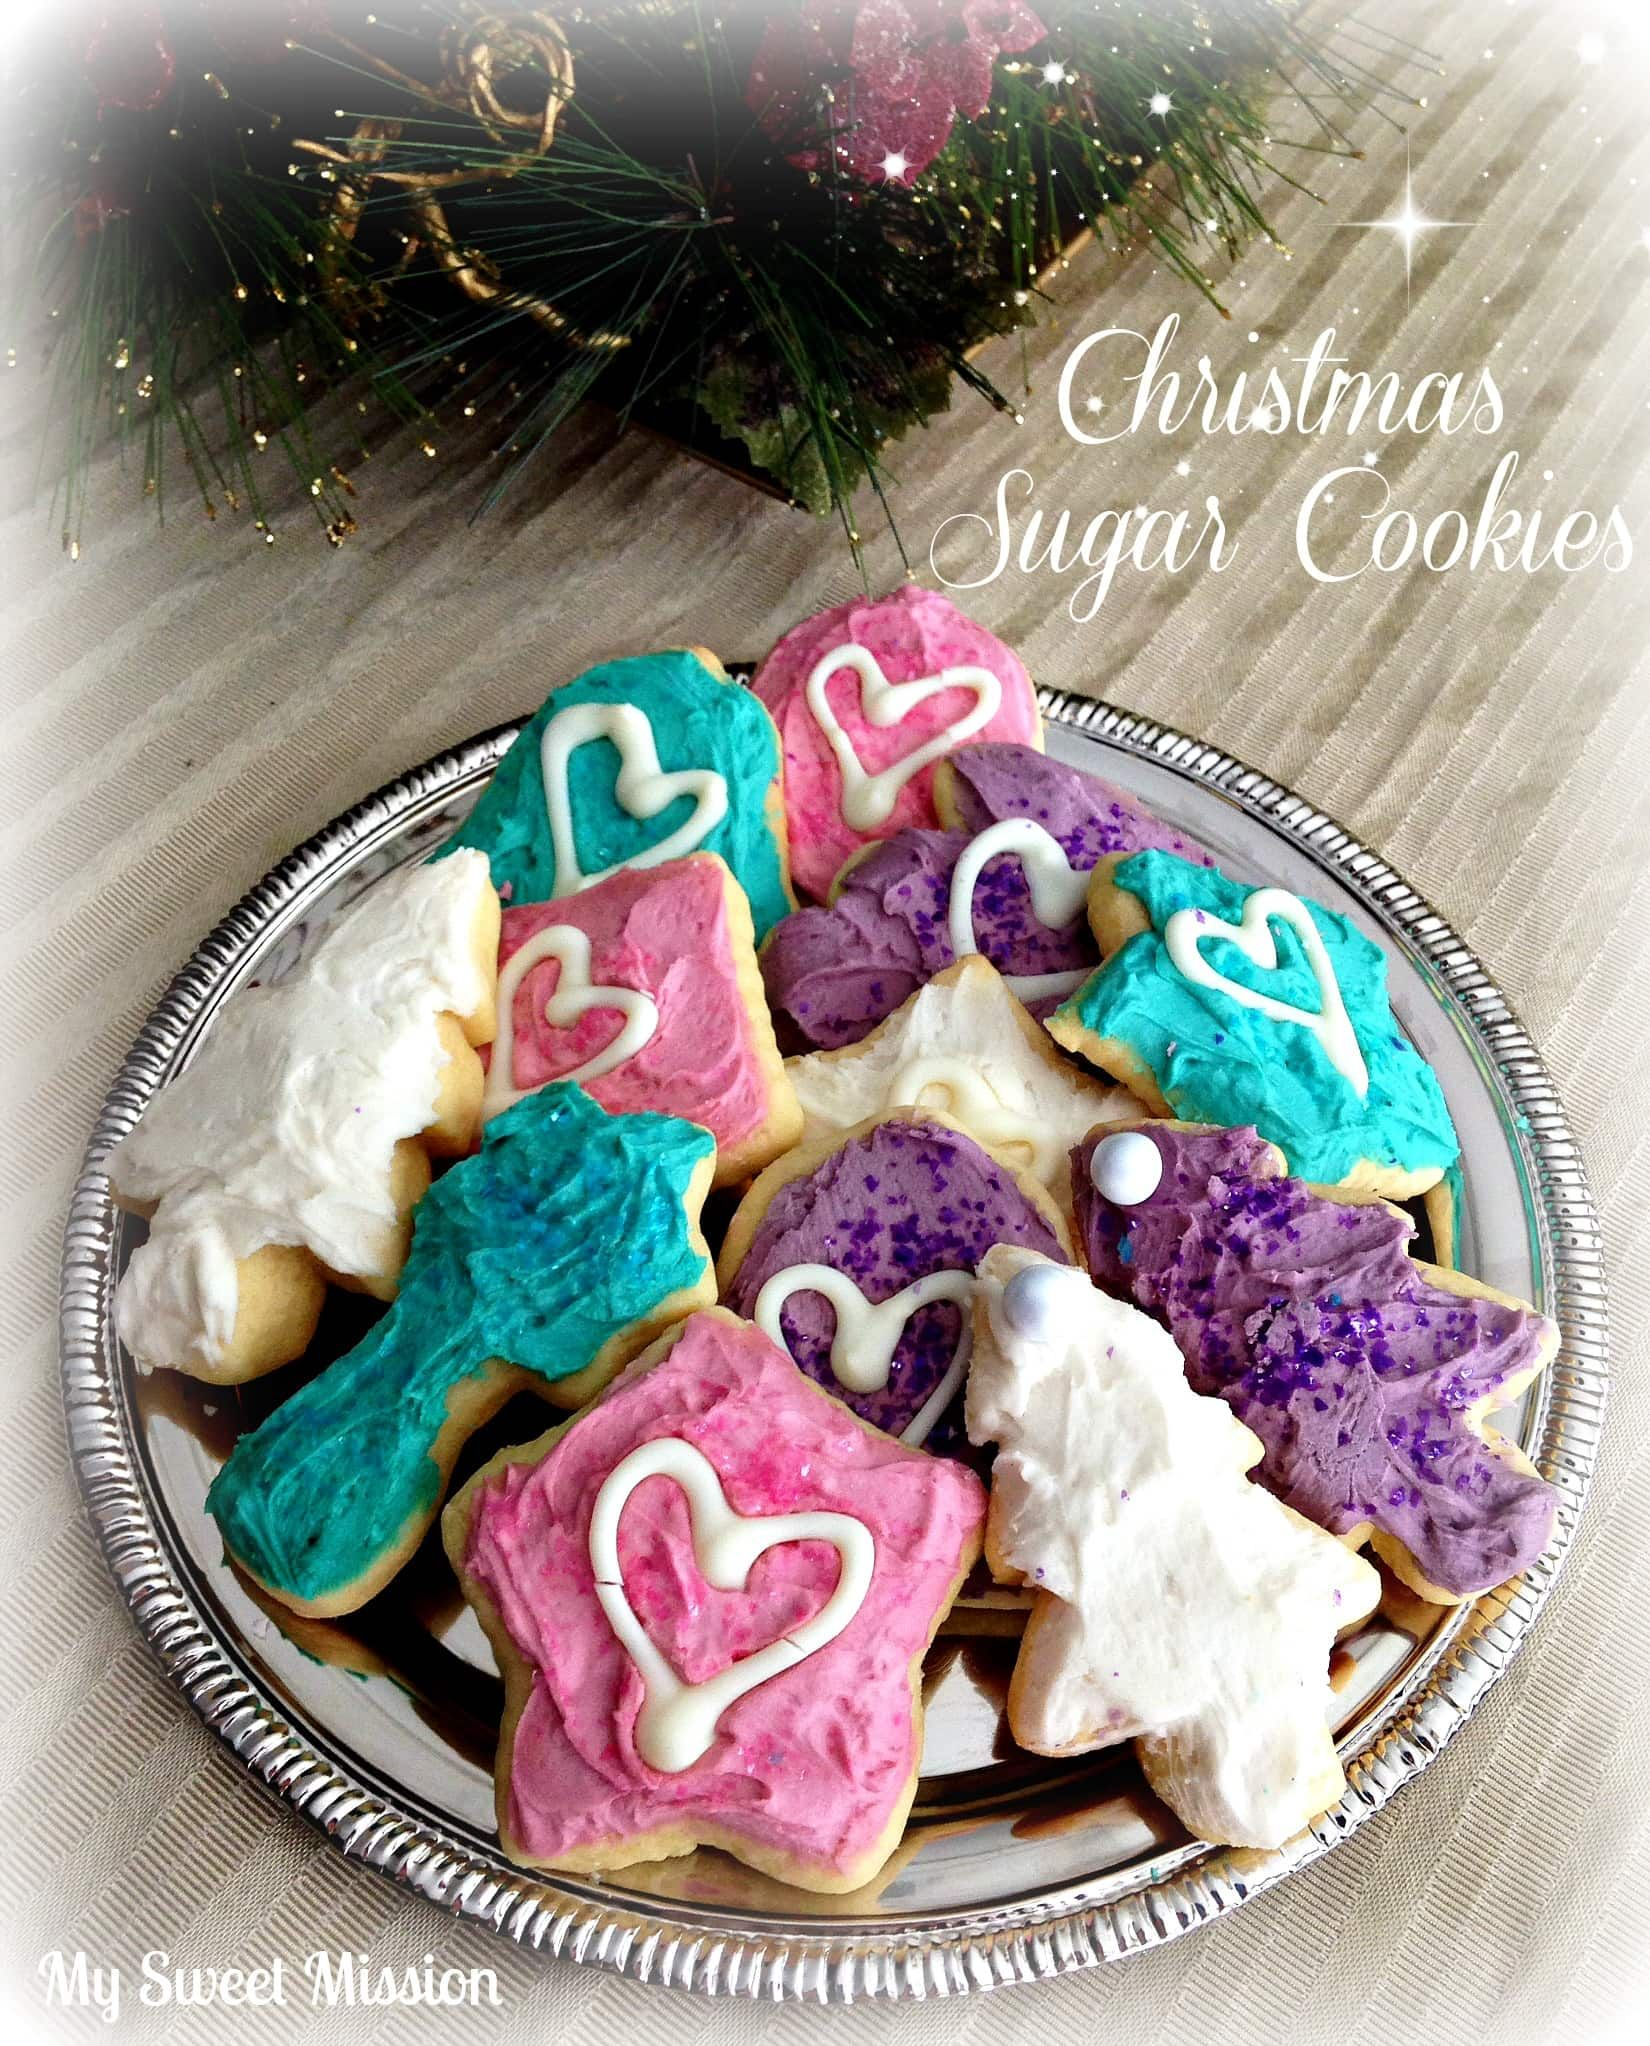 undefined My Pretty Christmas Sugar Cookies are deliciously buttery soft and decorated with pretty pastel colors